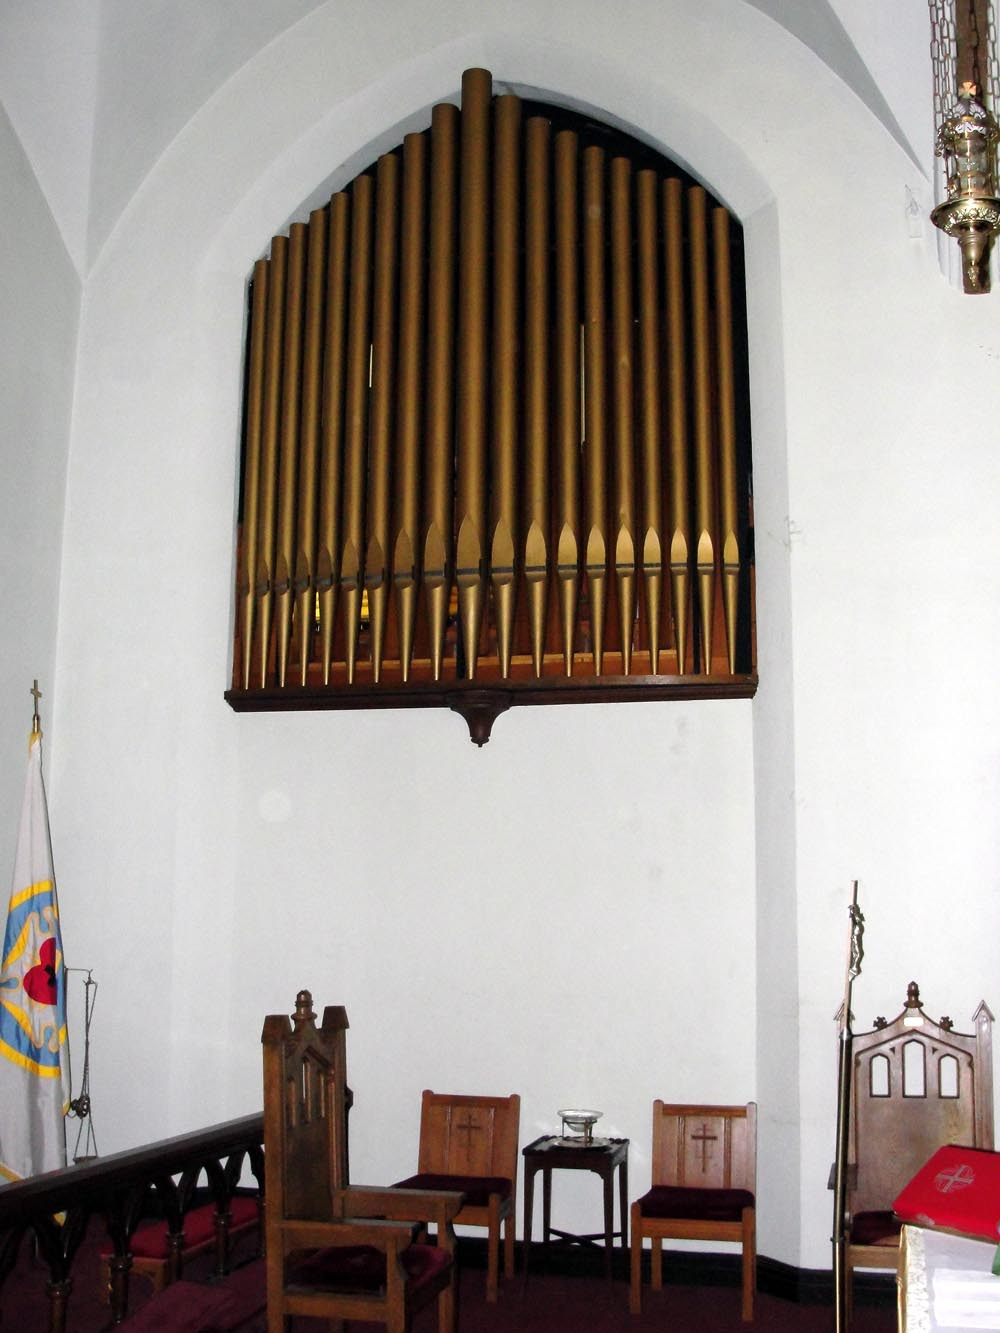 A. Gottfried & Co. organ (1929) in The Evangelical Lutheran Church of the Epiphany - Bronx, NY (photo: John Klauder)